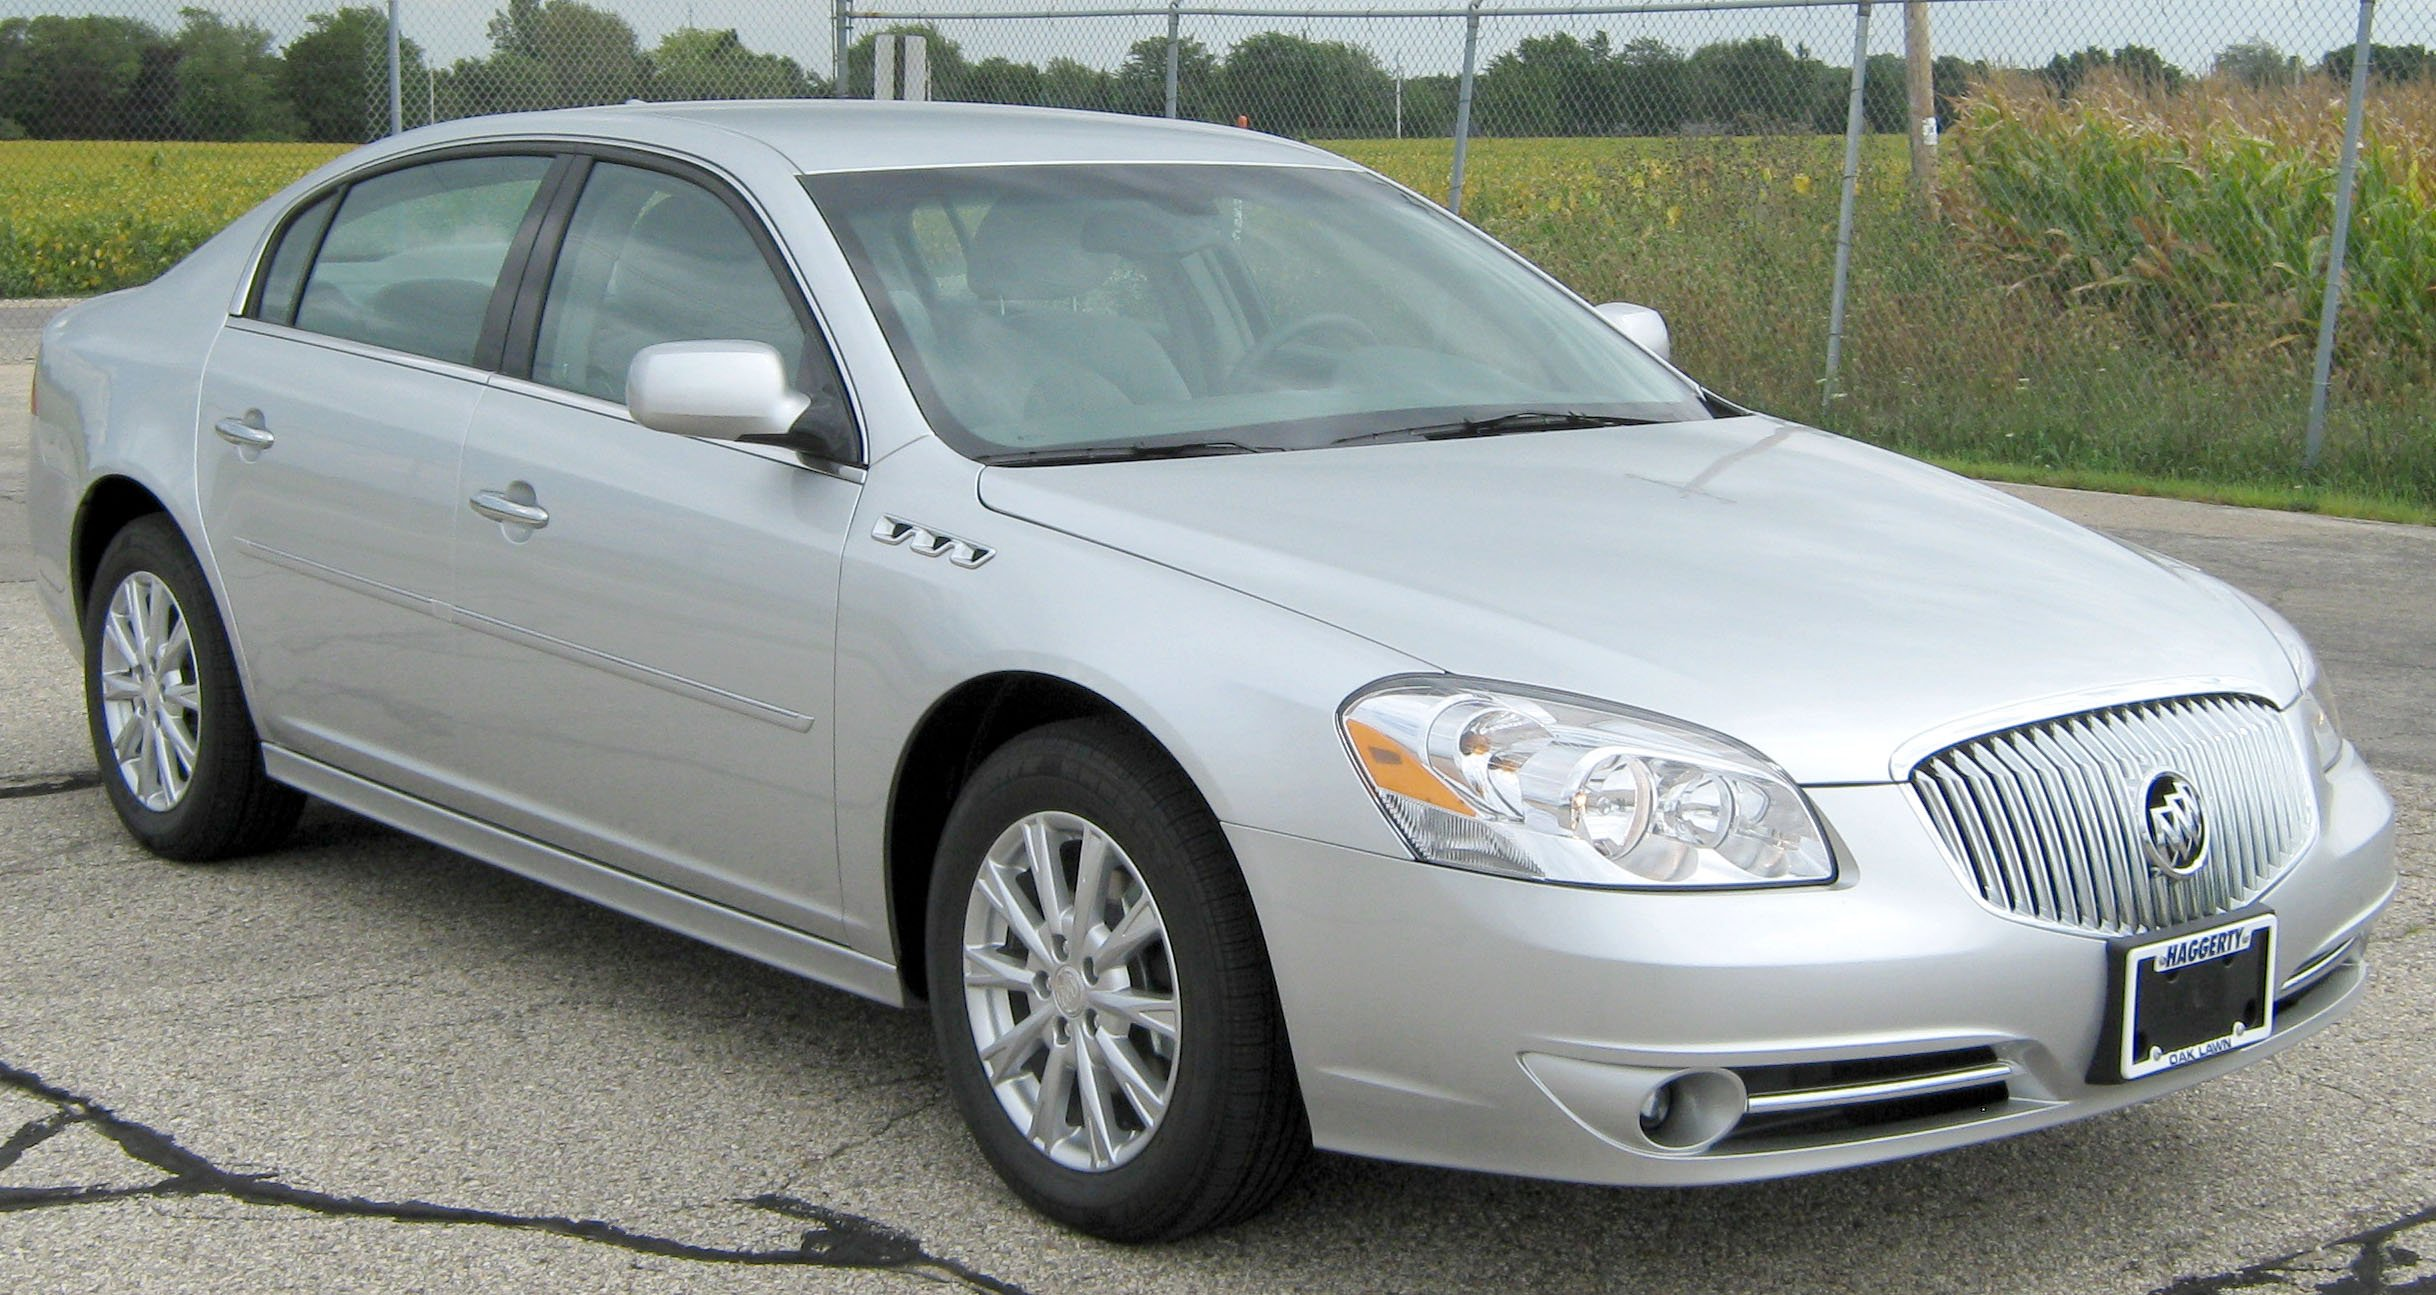 Buick Lucerne Models on 2006 Buick Lacrosse Cx